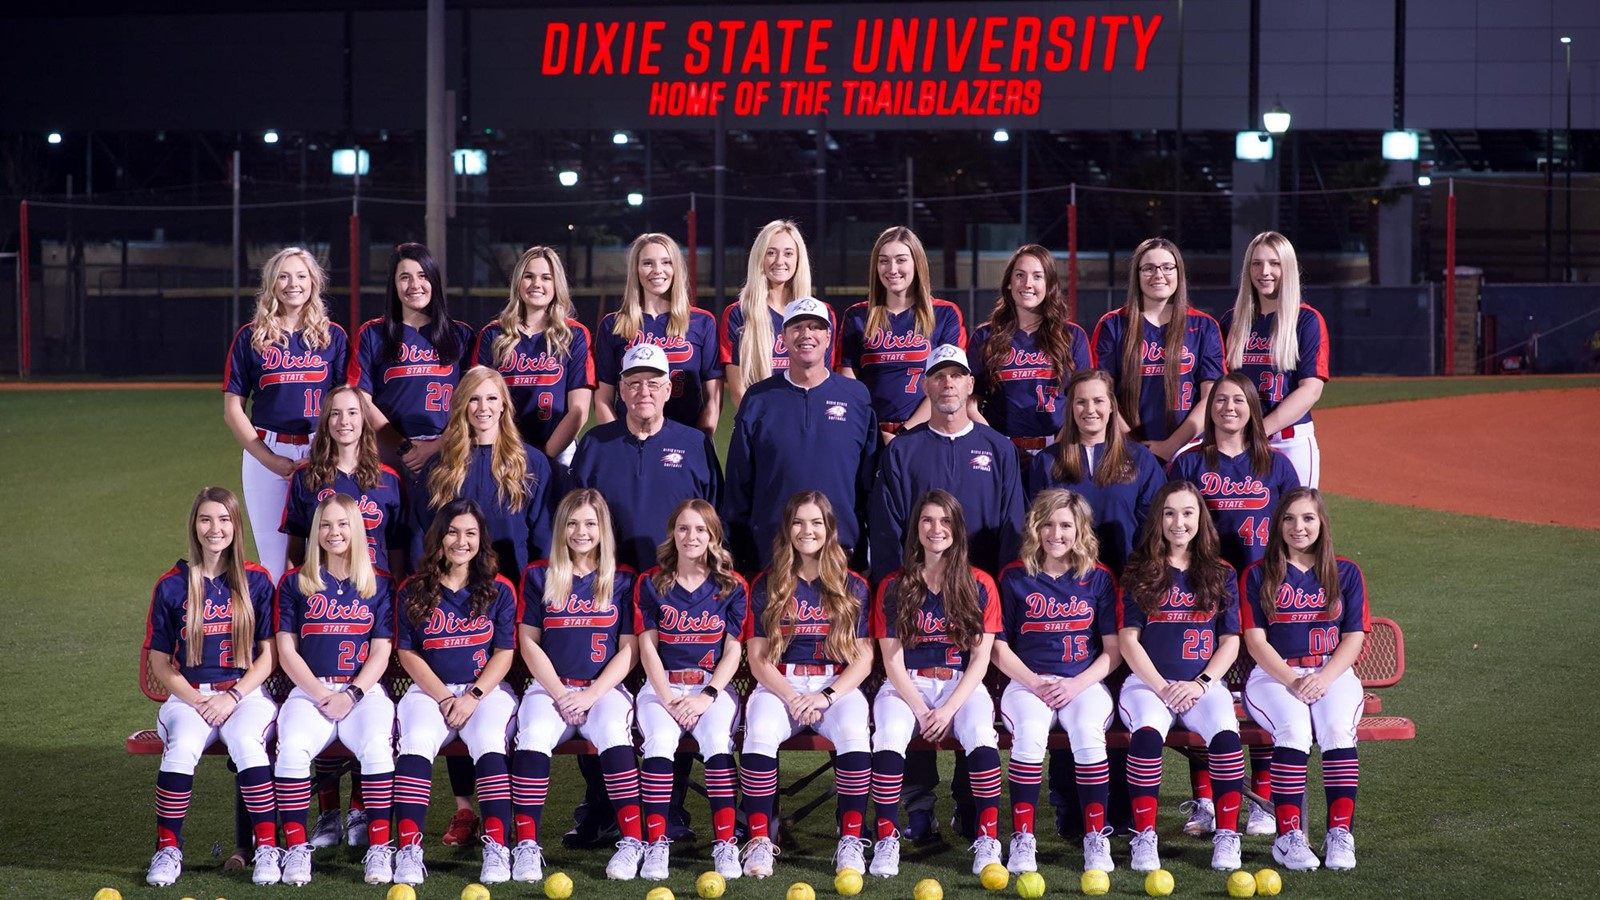 Dixie Youth Softball World Series 2019 Dates